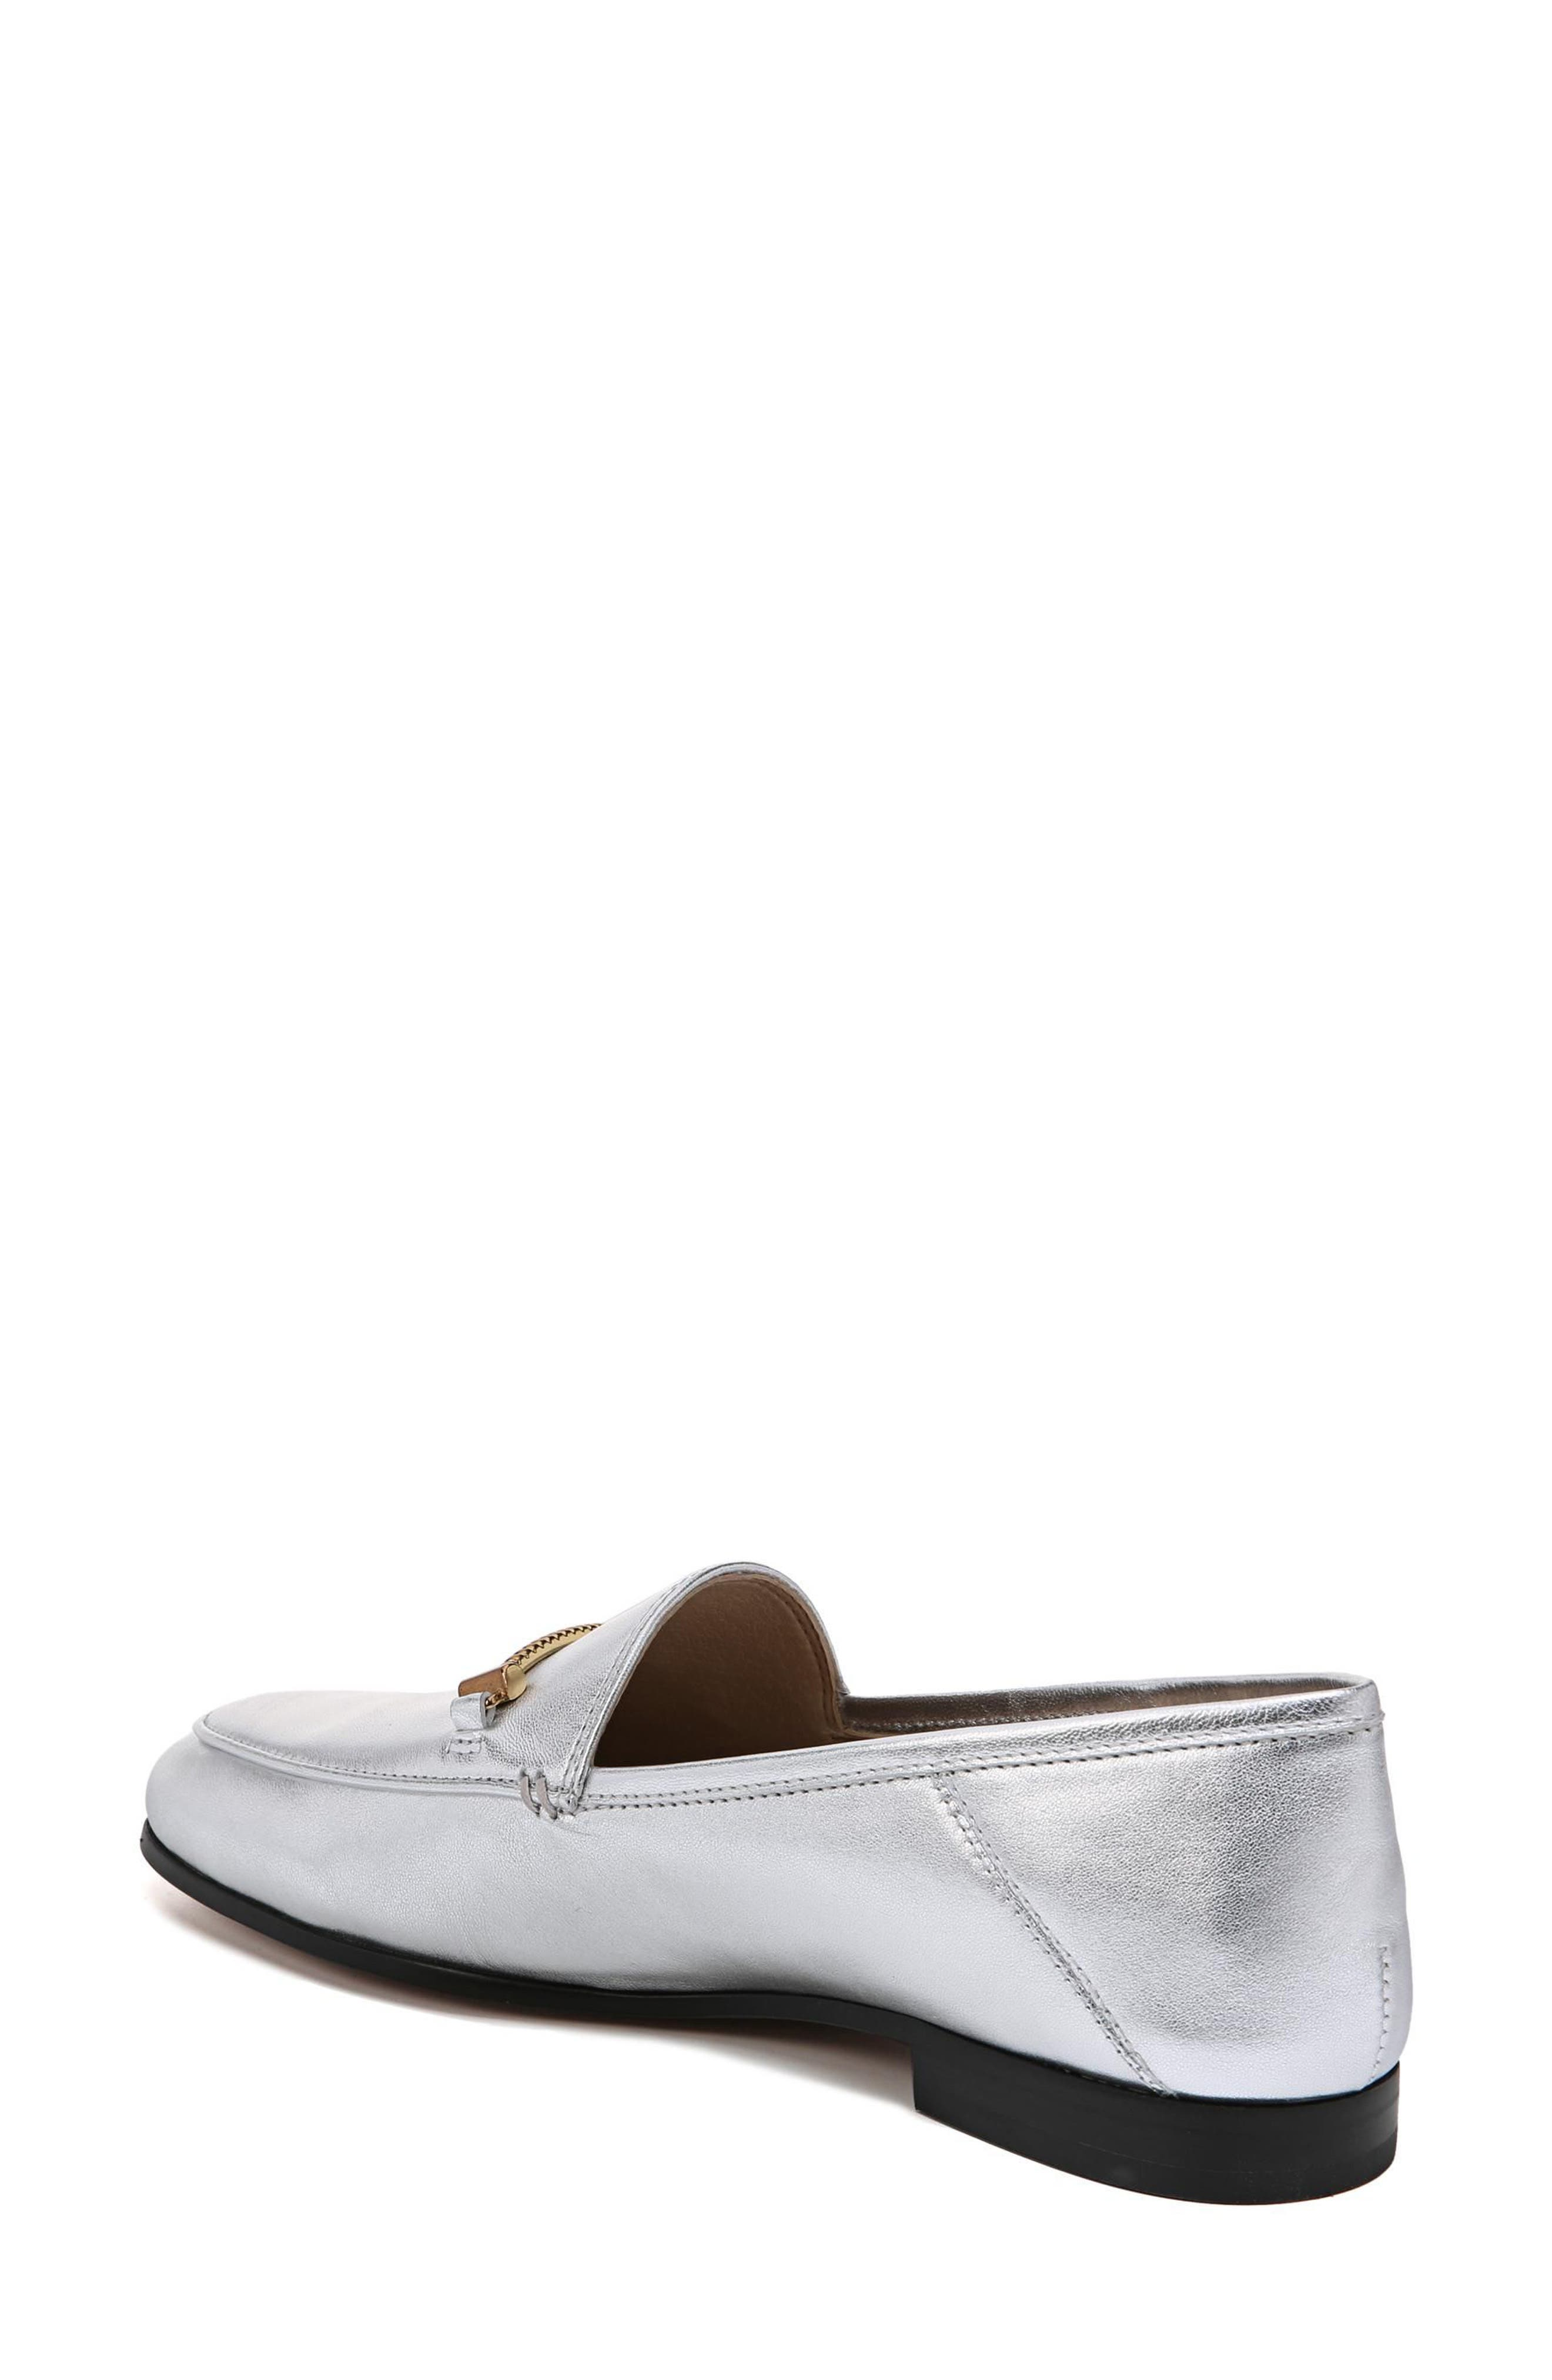 Lior Loafer,                             Alternate thumbnail 2, color,                             SOFT SILVER METALLIC LEATHER